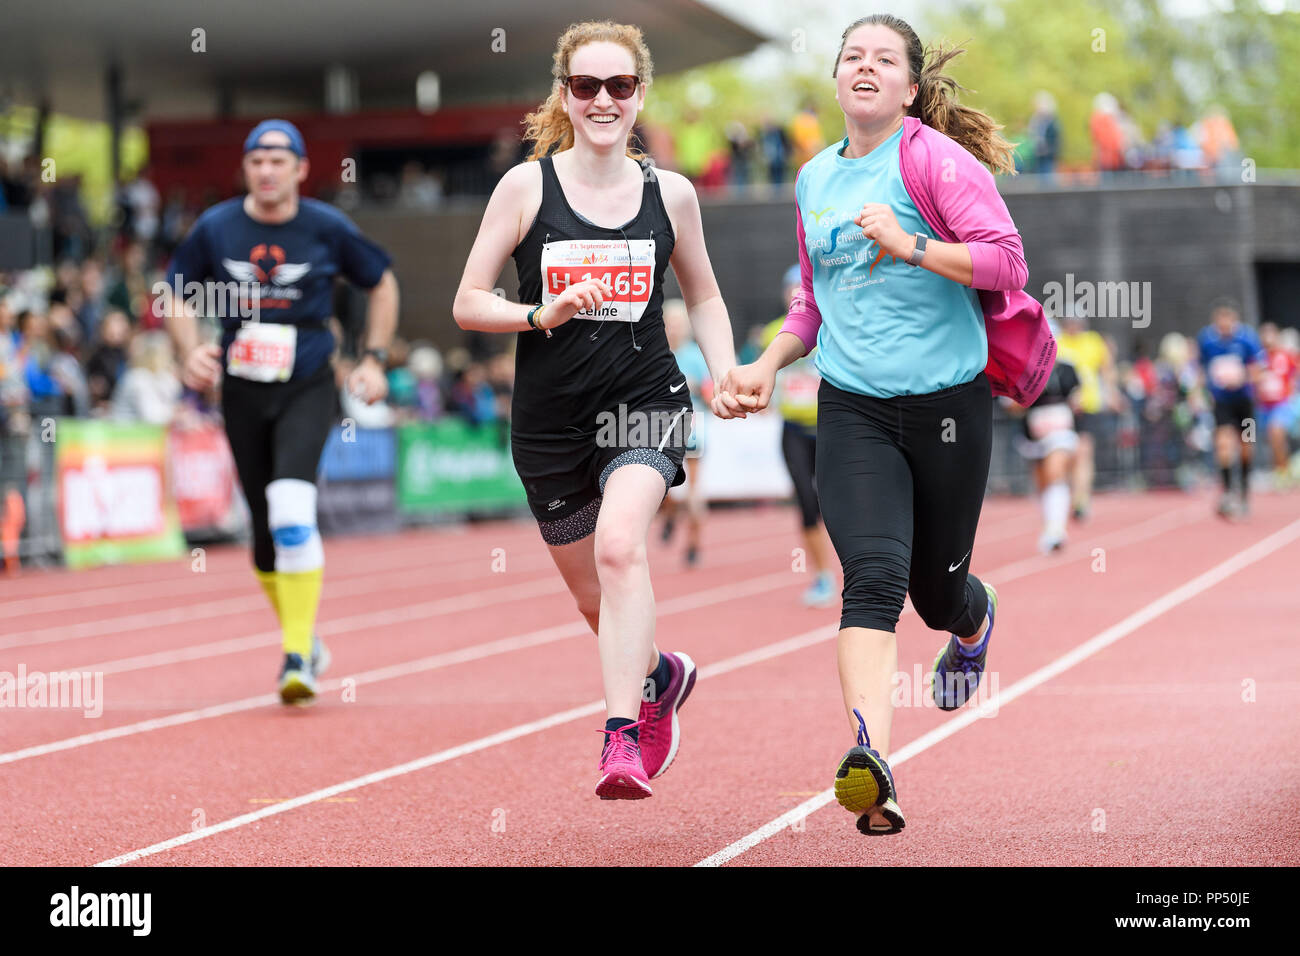 Karlsruhe, Germany. 23rd Sep, 2018. Feature: happy runners at the finish line. GES/Athletics/Baden-Marathon, 23.09.2018 | usage worldwide Credit: dpa/Alamy Live News - Stock Image